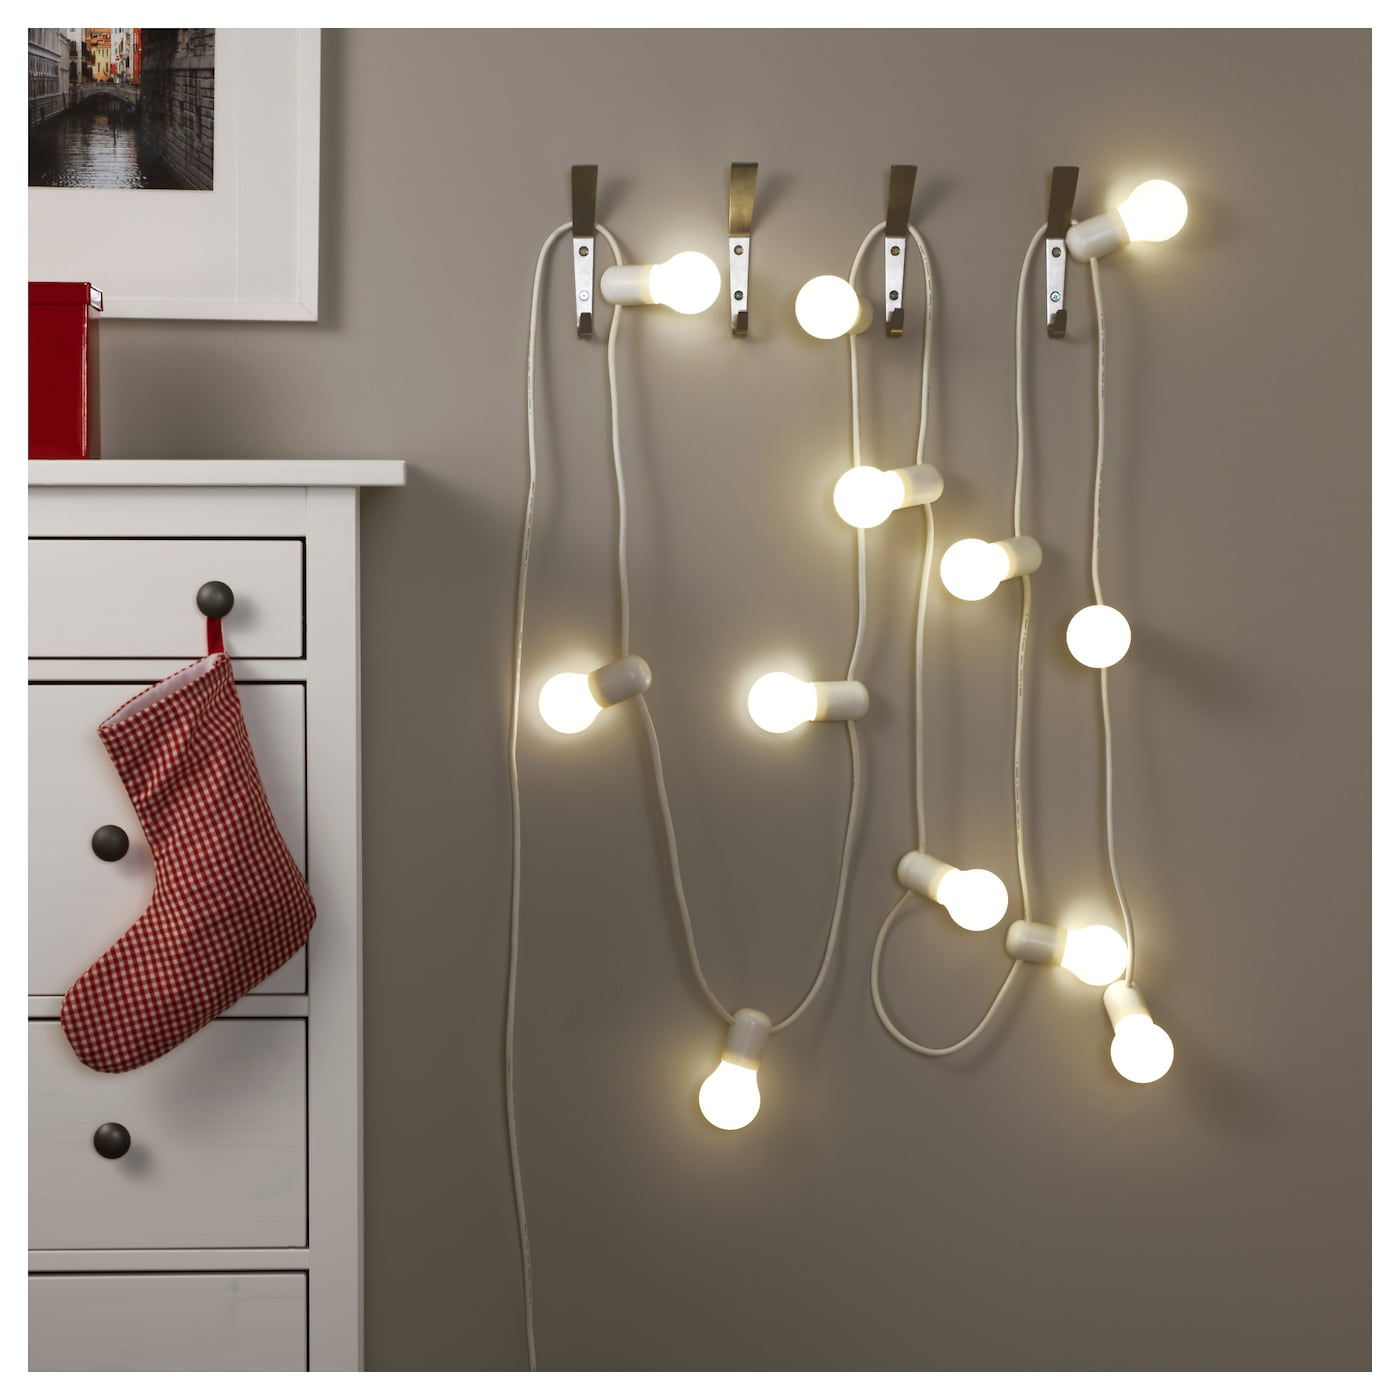 str la led lighting chain with 12 bulbs in outdoor frosted. Black Bedroom Furniture Sets. Home Design Ideas